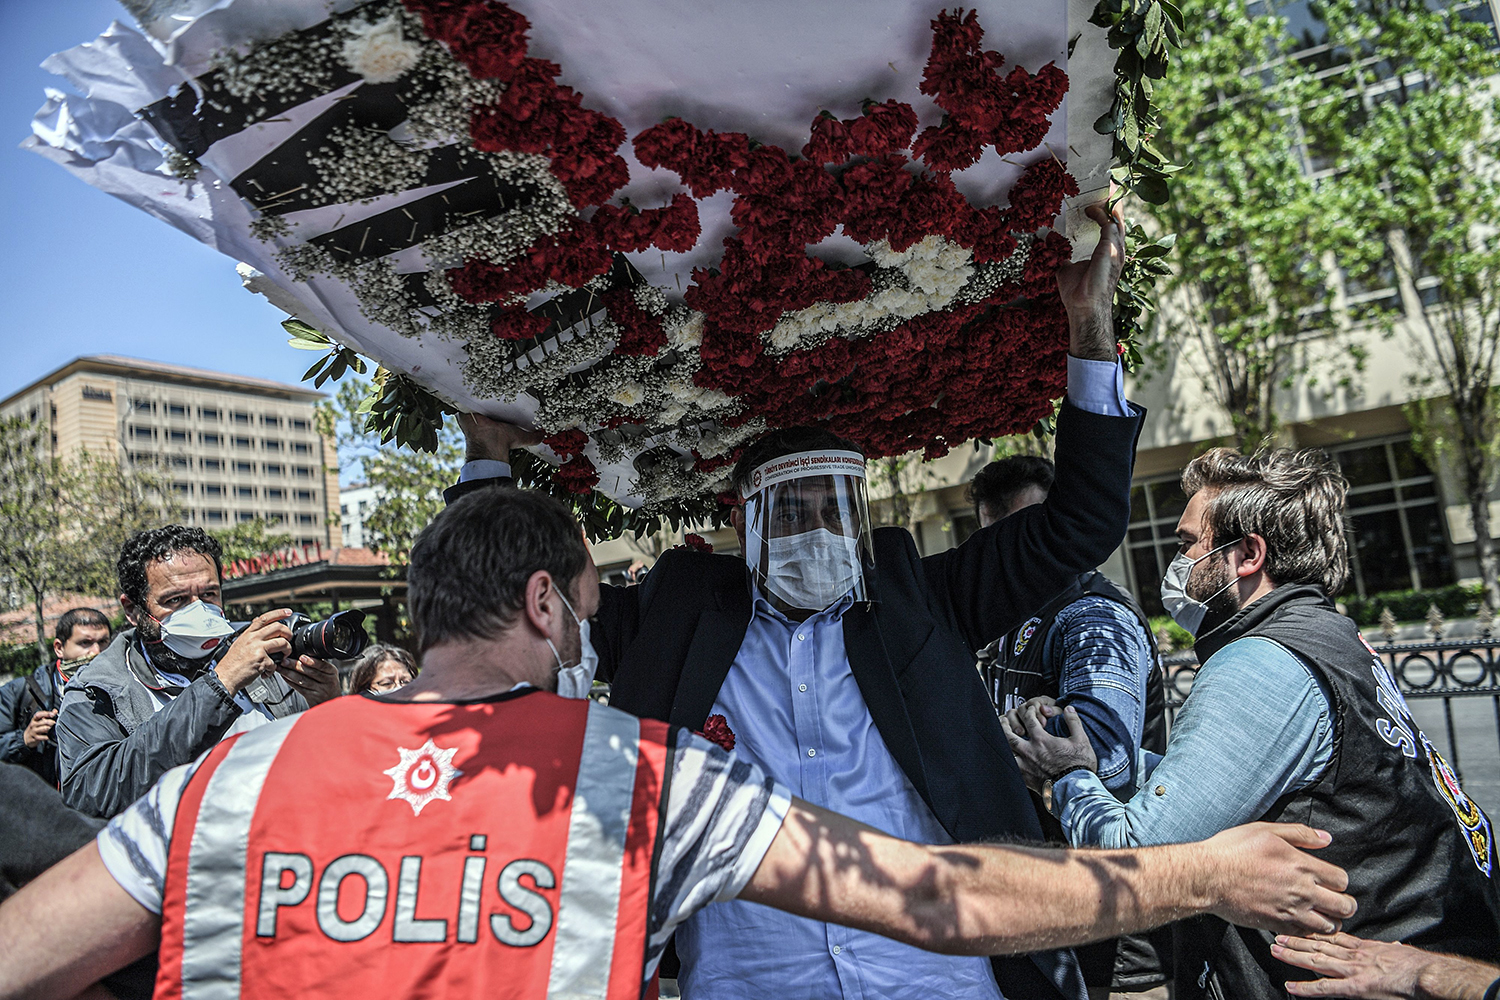 Ali Seker, a lawmaker of the Turkish opposition Republican People's Party, is blocked by police as he carries a wreath in Istanbul on May 1 during a march to mark May Day in defiance of the government lockdown. OZAN KOSE/AFP via Getty Images